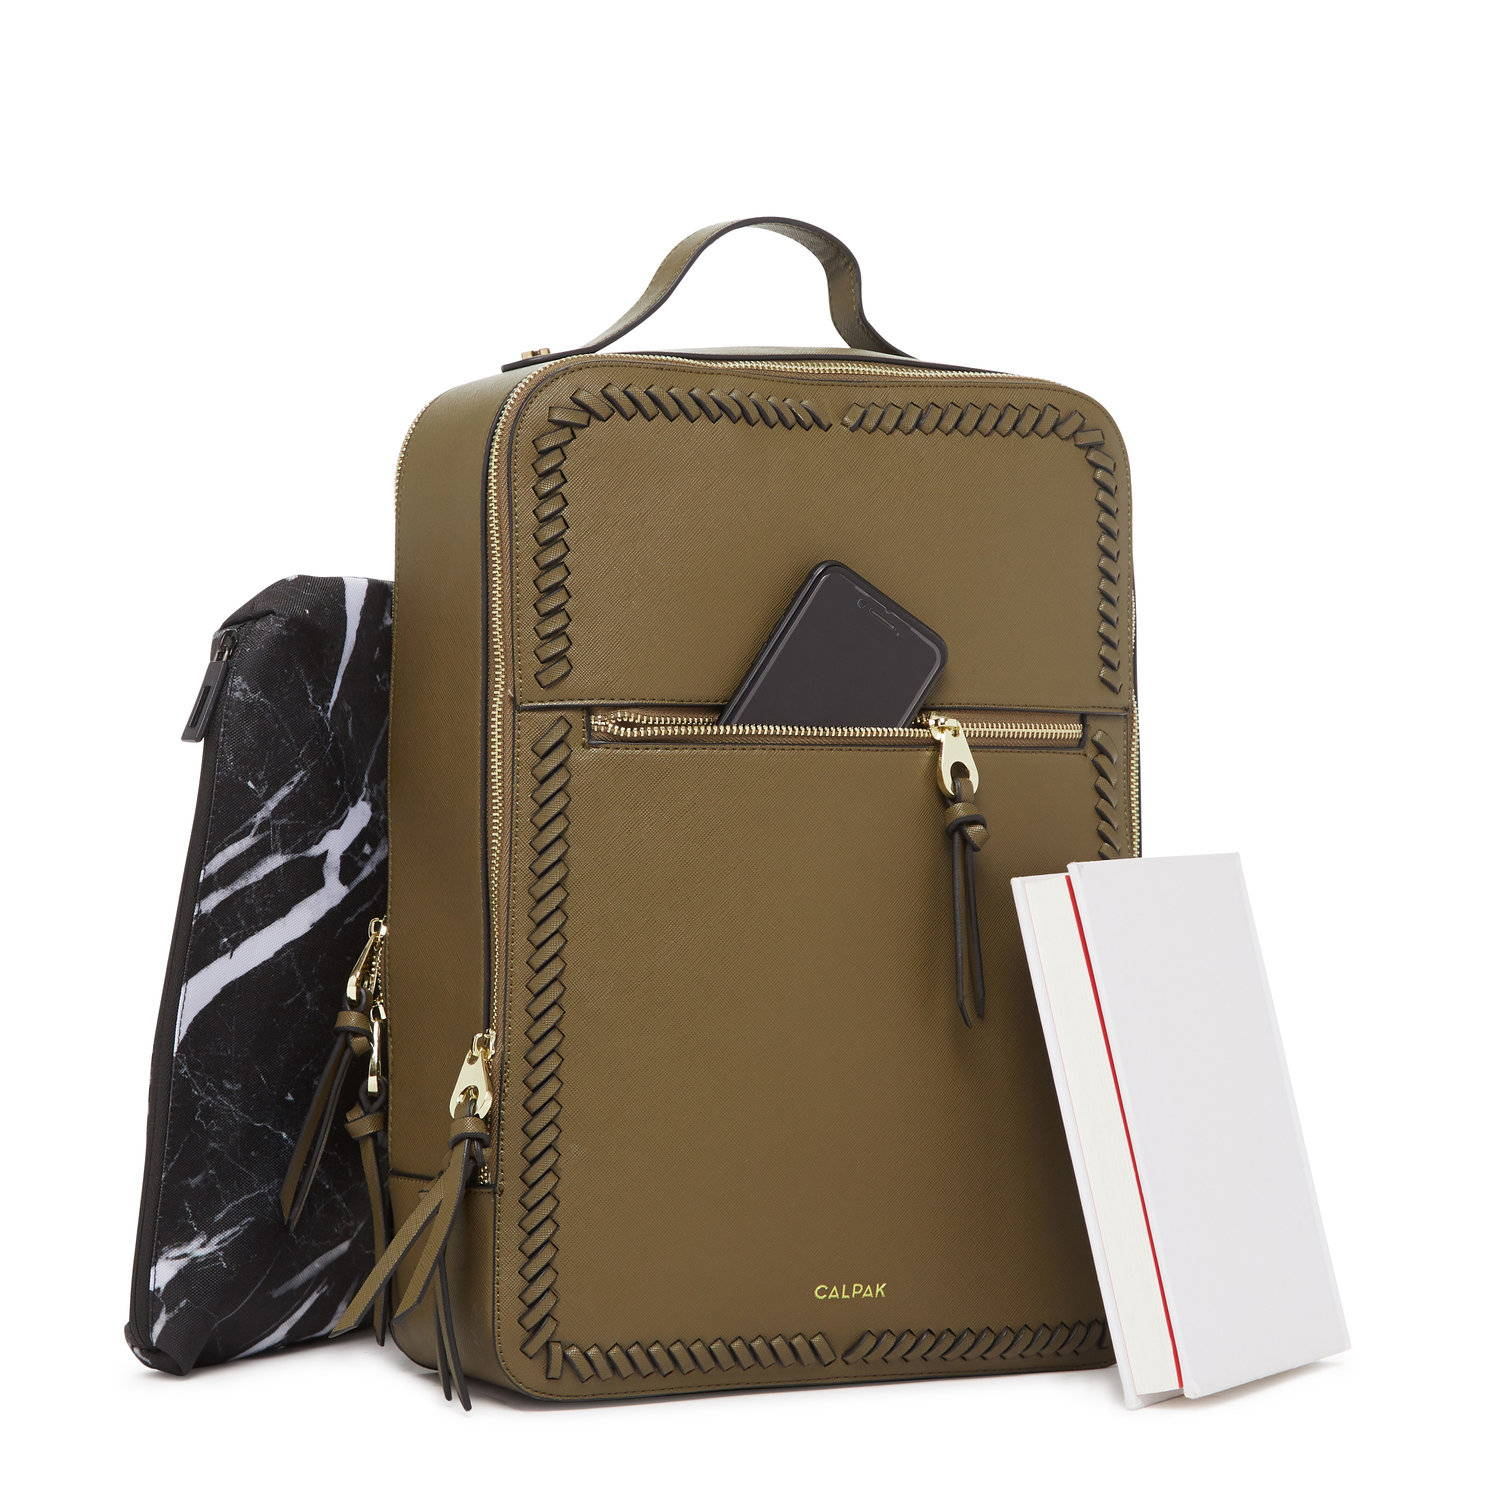 CALPAK Laptop Backpack in Olive.